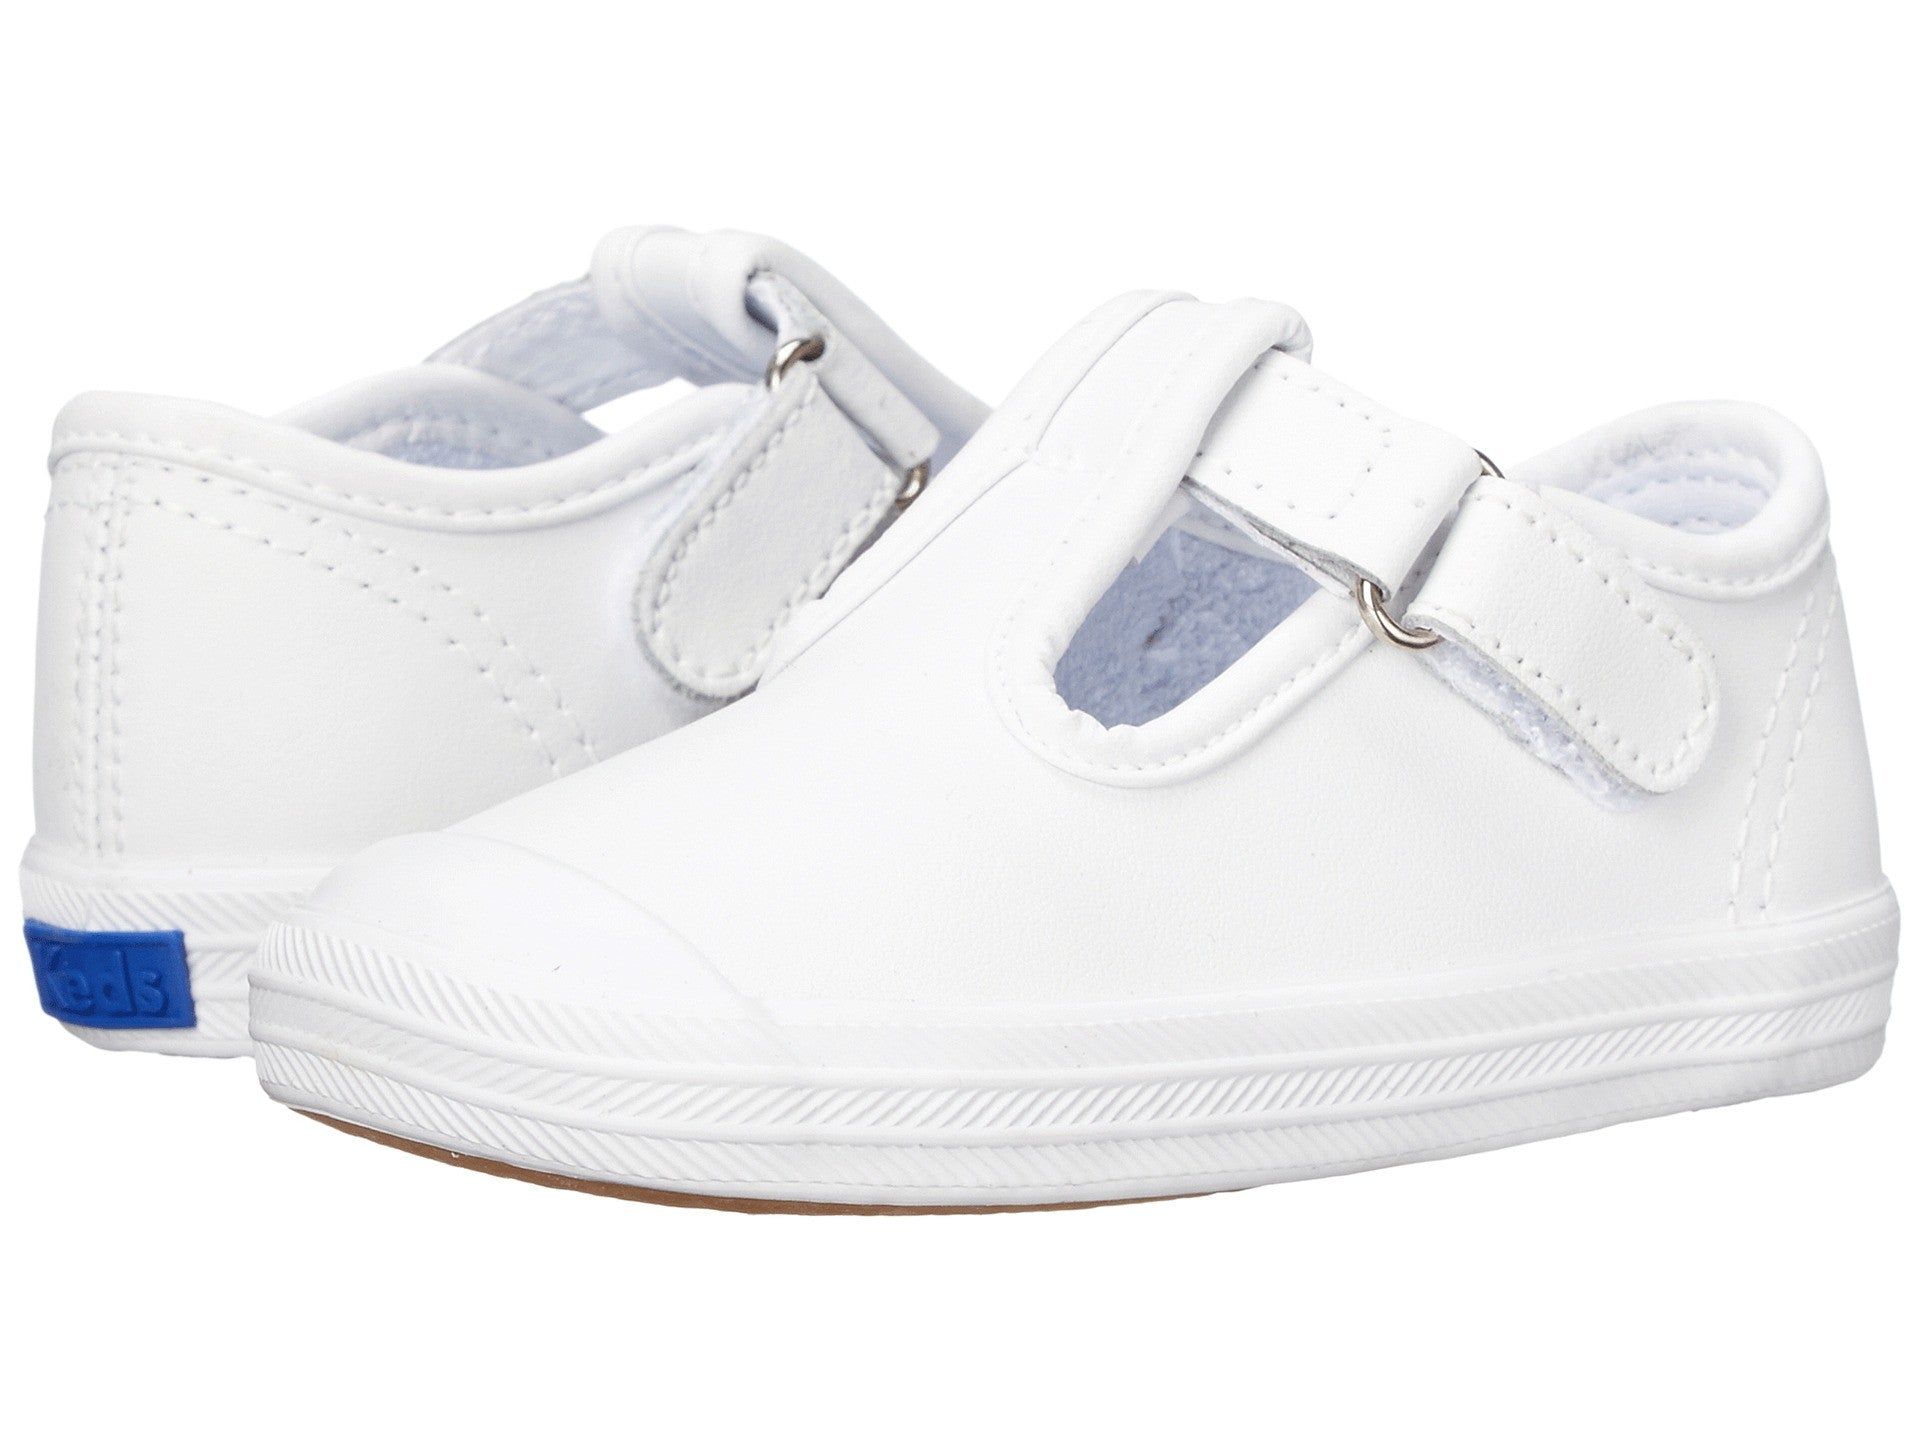 LAST ONE!!! Keds|T Strap in White| Toe Cap |Size 2 - Noa & Vivi Kids Apparel